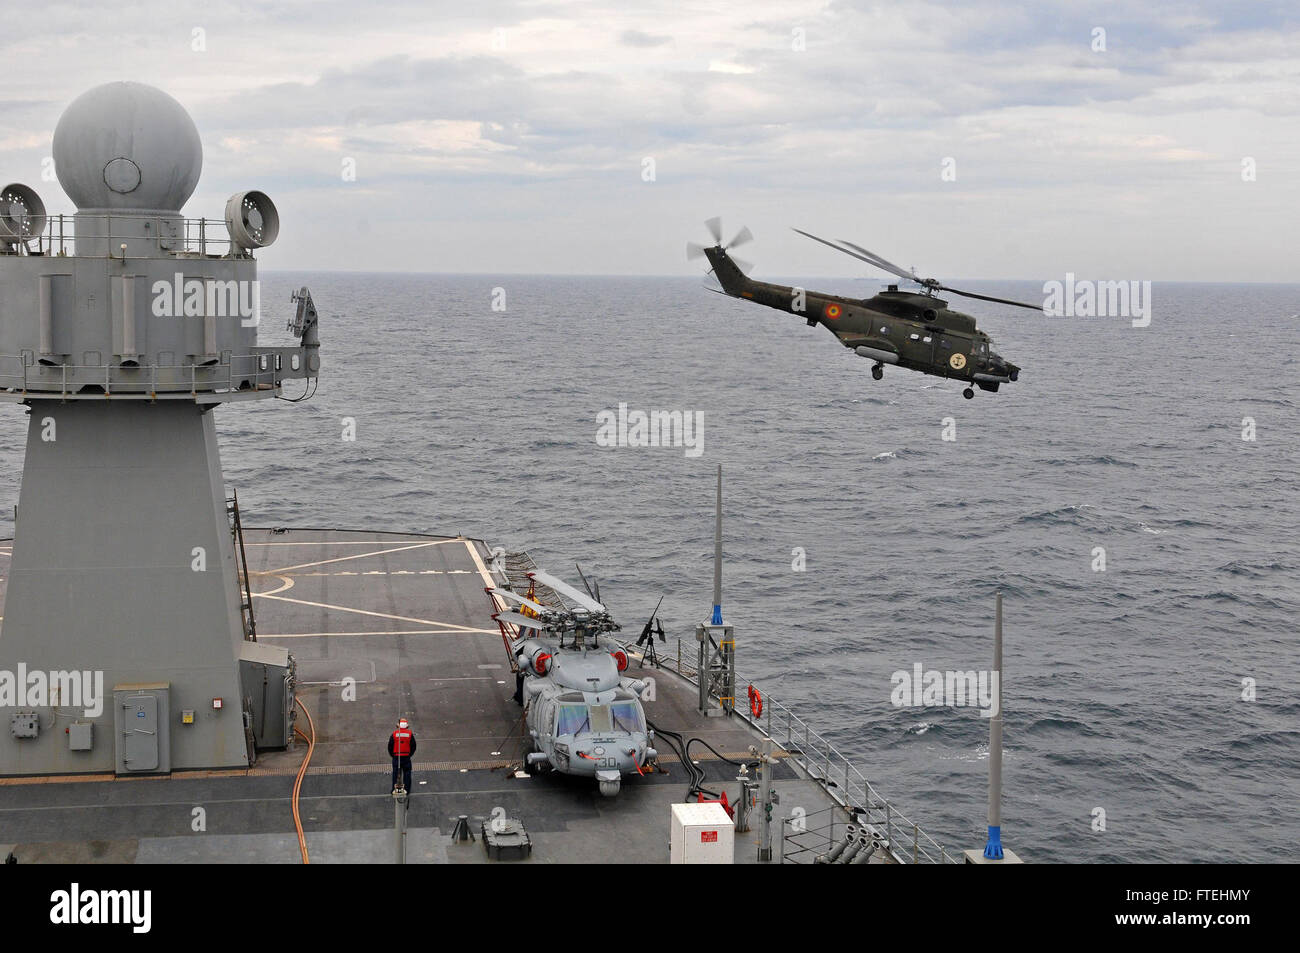 BLACK SEA (Oct. 23, 2014) - A Romanian navy IAR -330 medium utility helicopter conducts flight operations aboard - Stock Image